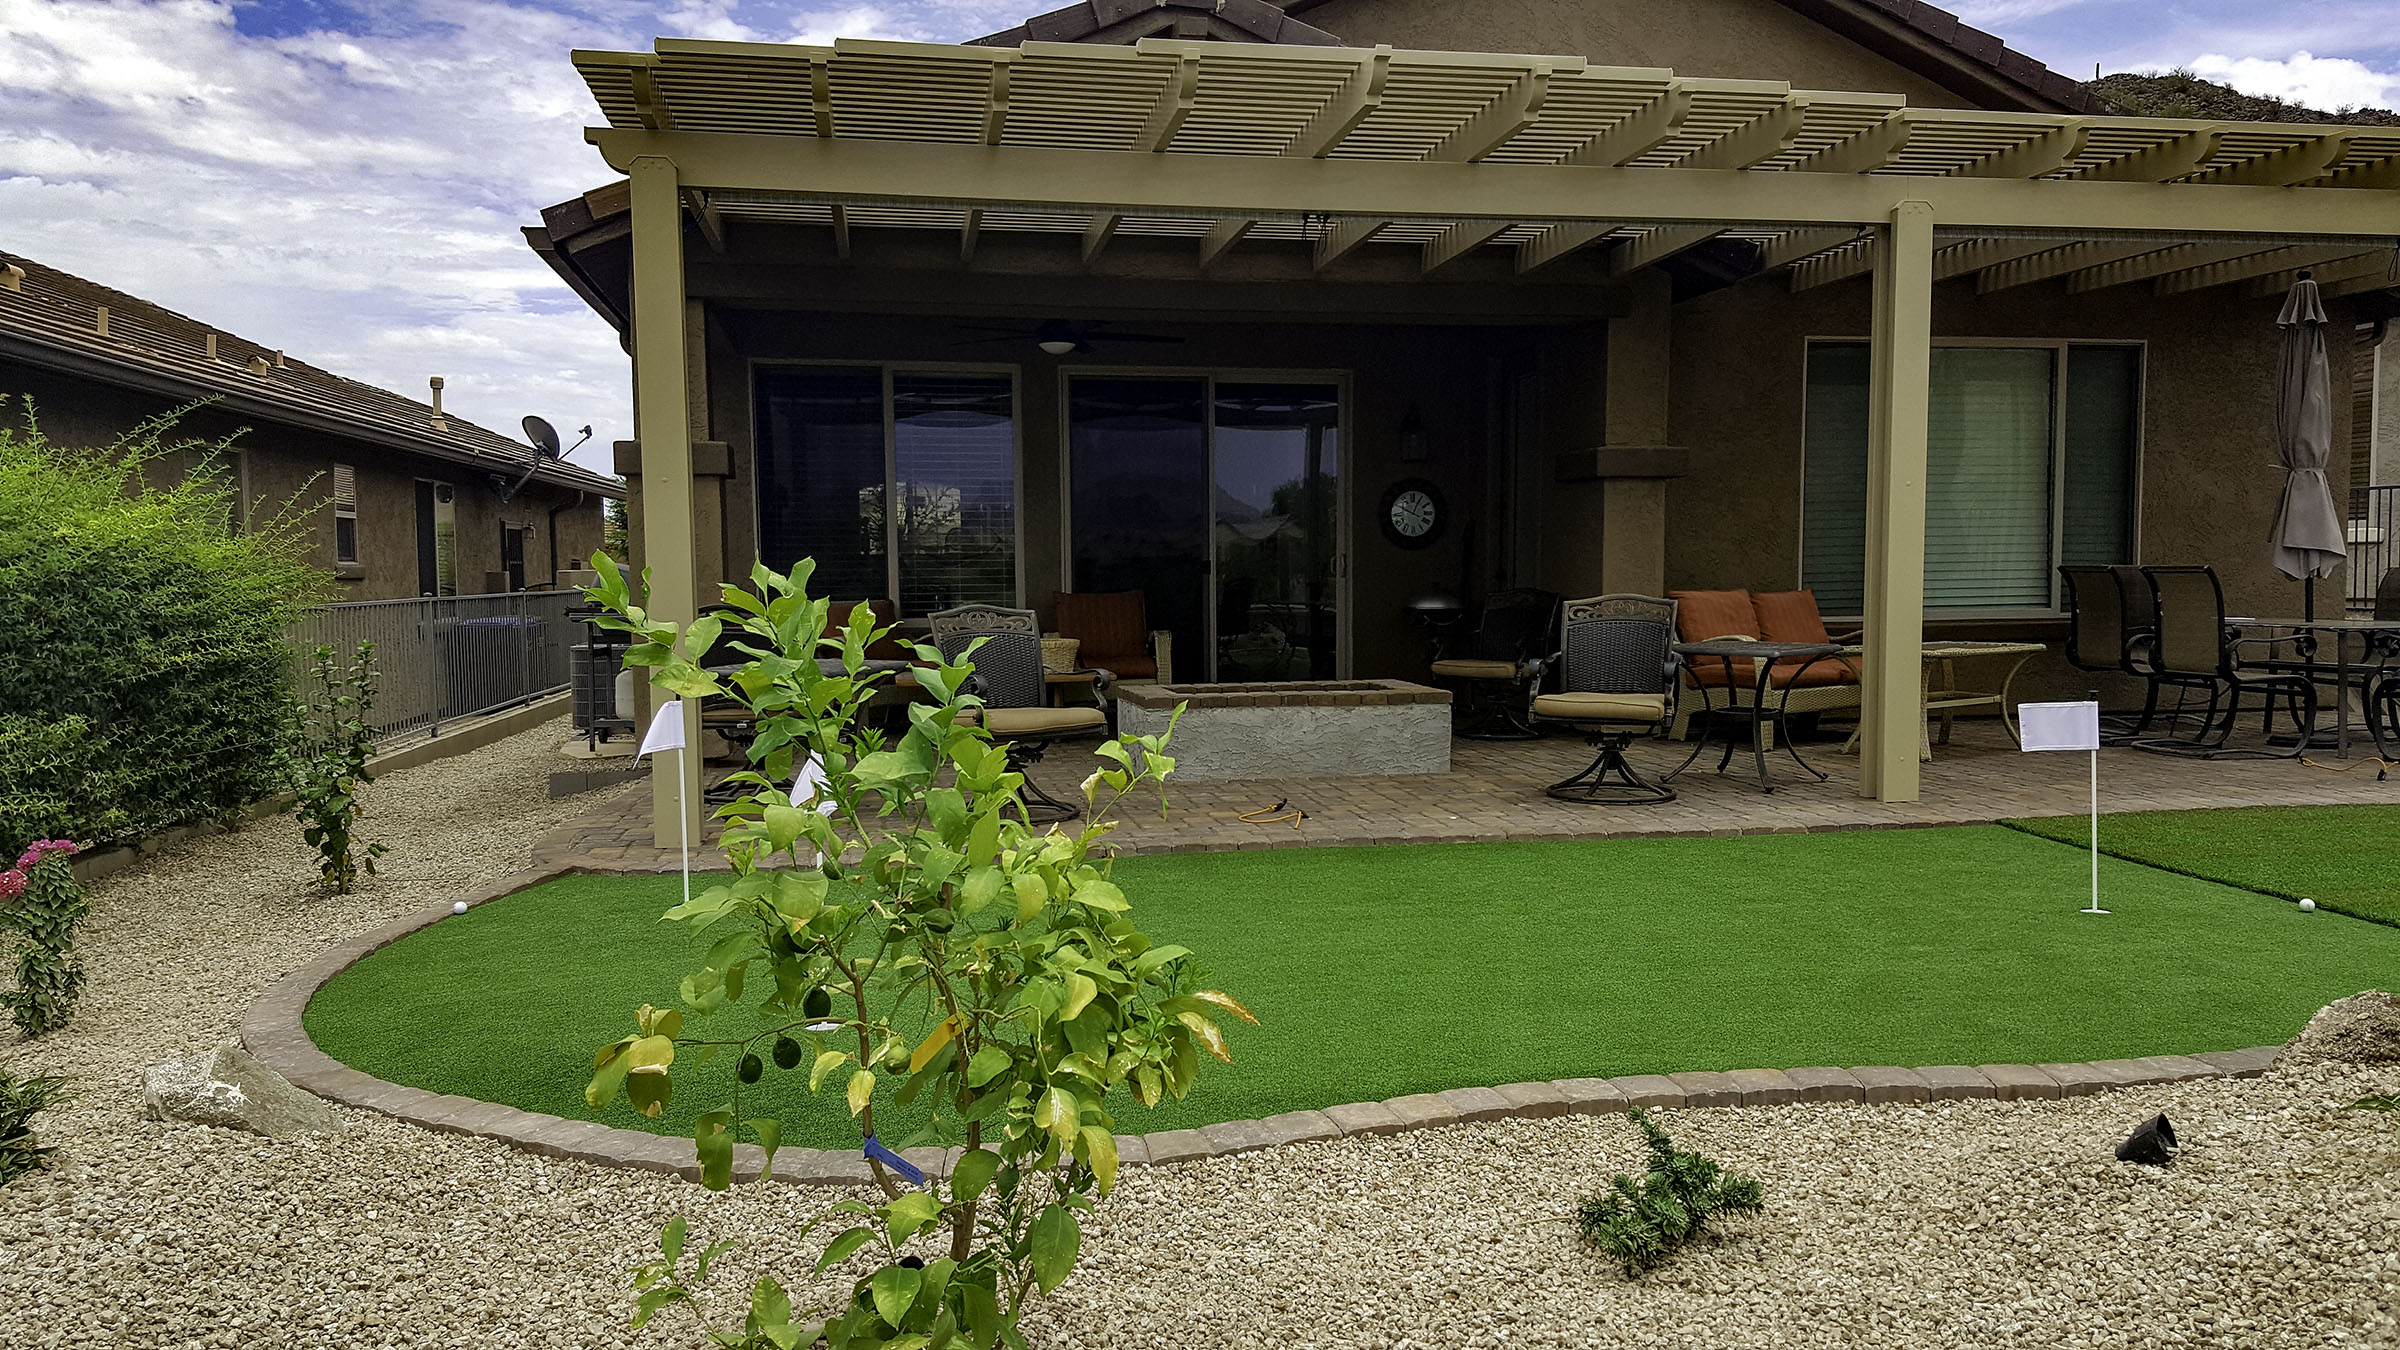 backyard landscape design remodel before and after pictures backyard after2 - Backyard Garden Ideas Before And After